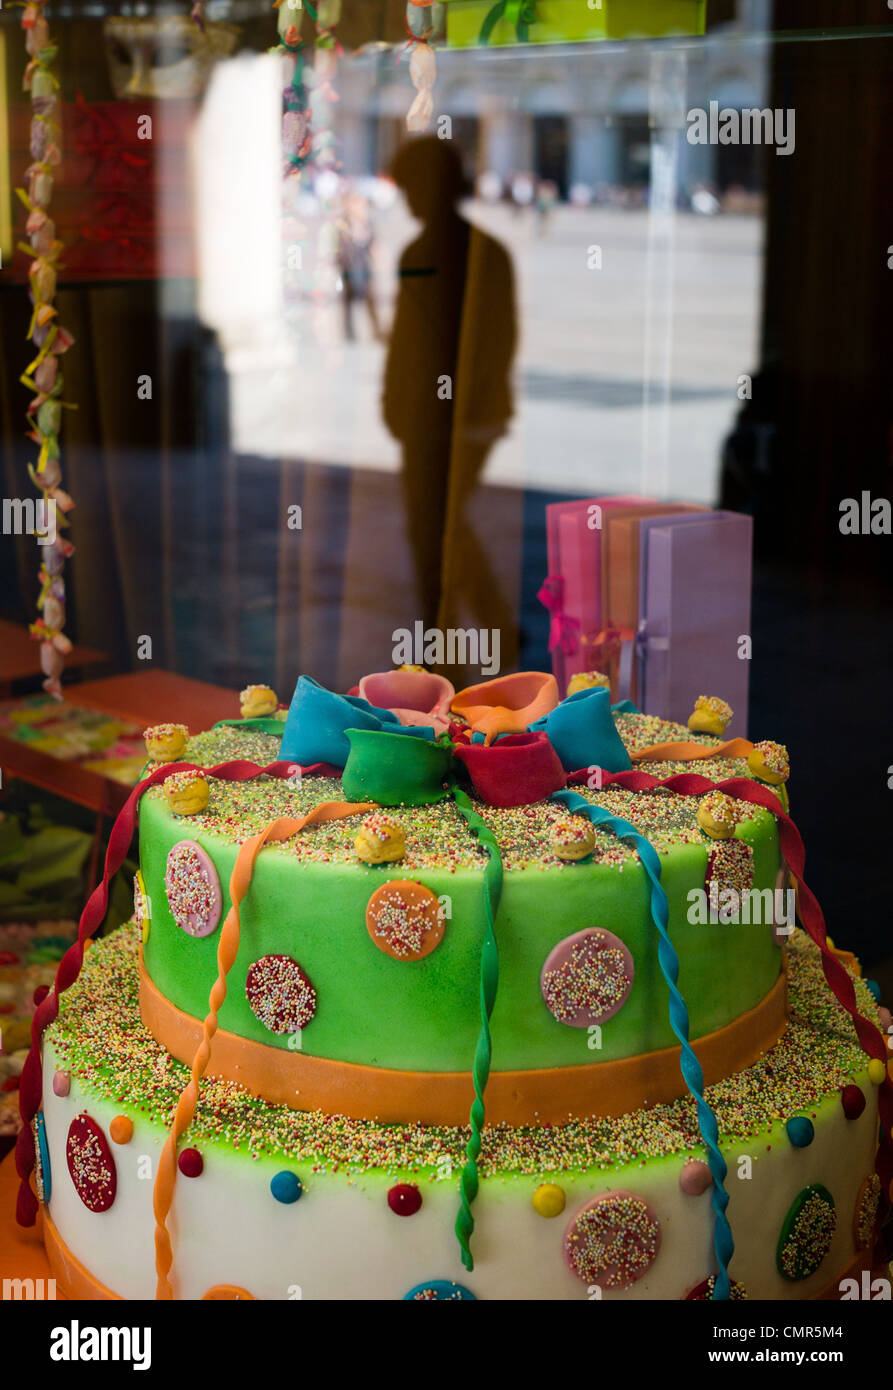 Birthday Cake In Shop Window Stock Photos Birthday Cake In Shop